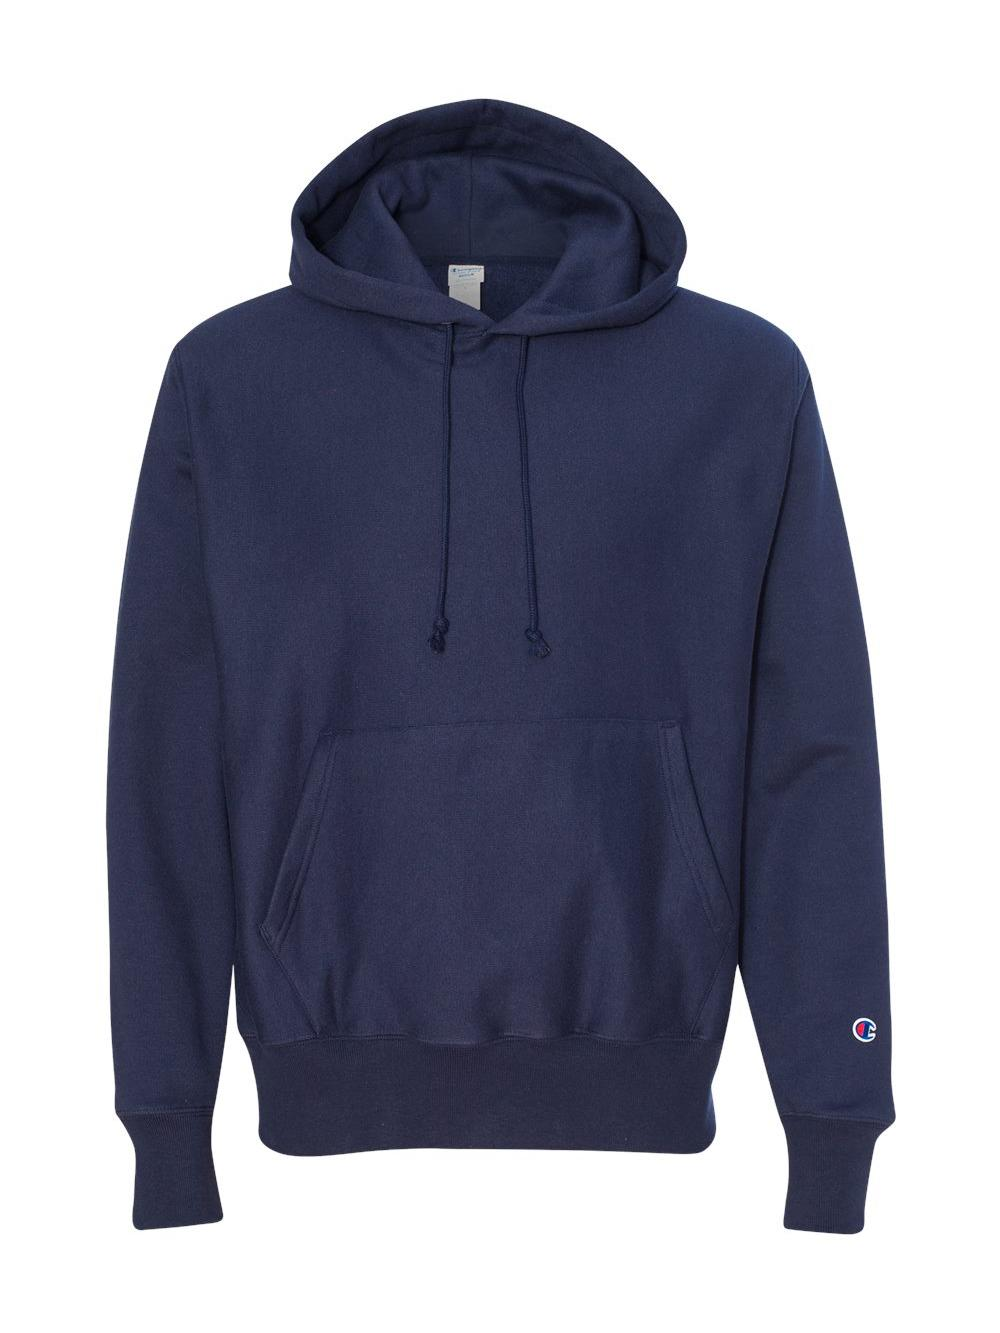 Fleece Reverse Weave Hooded Sweatshirt